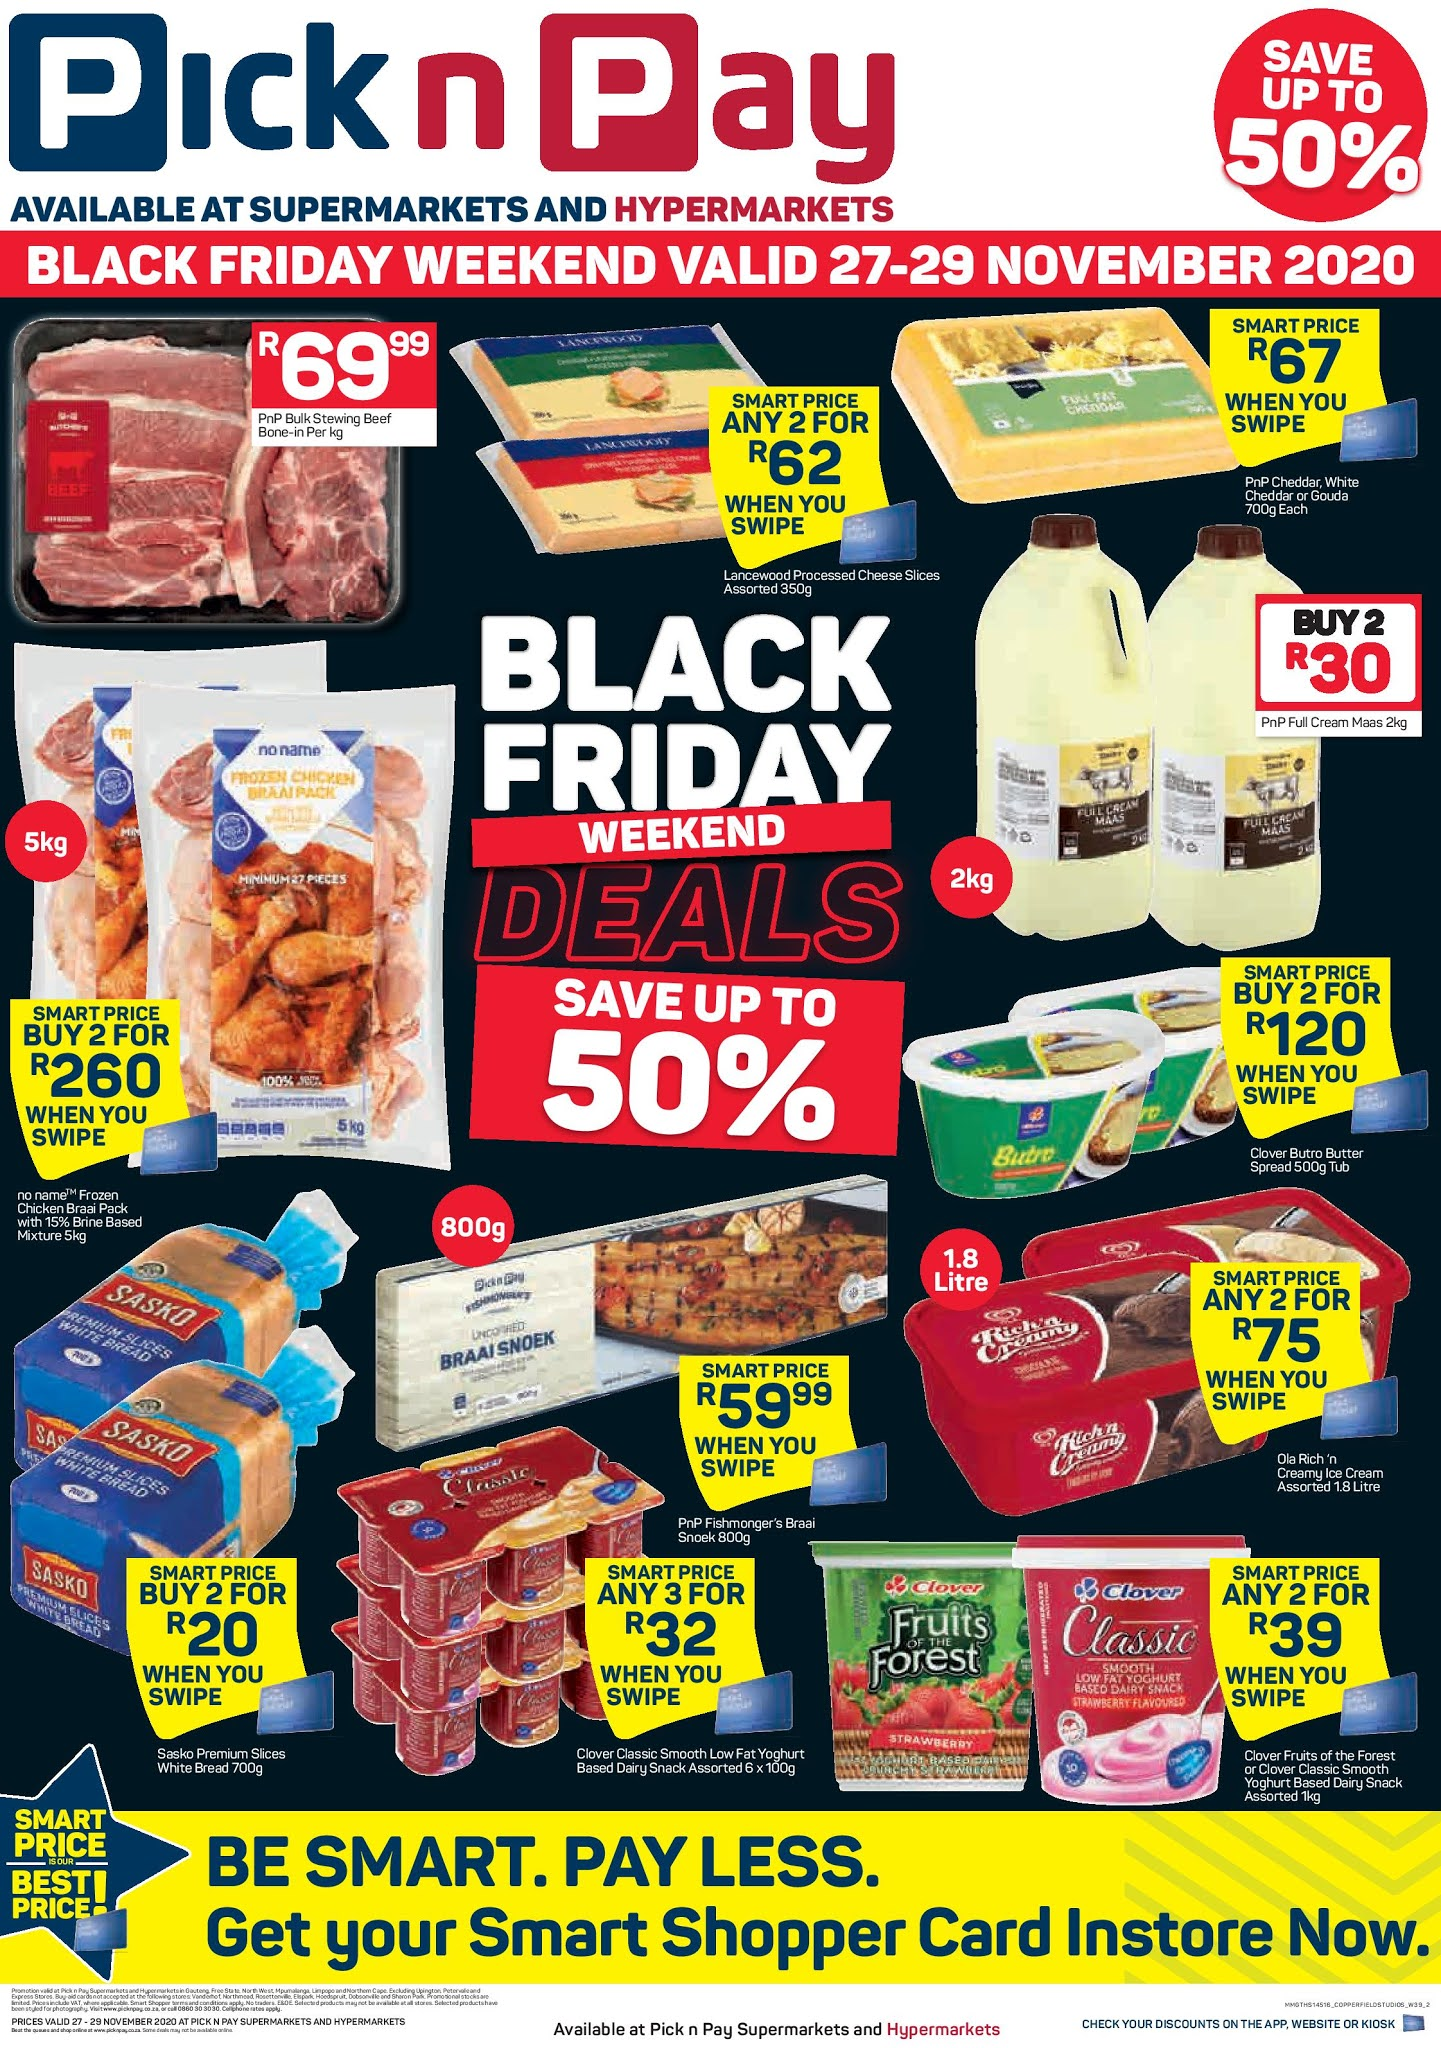 Pick n Pay Black Friday 2